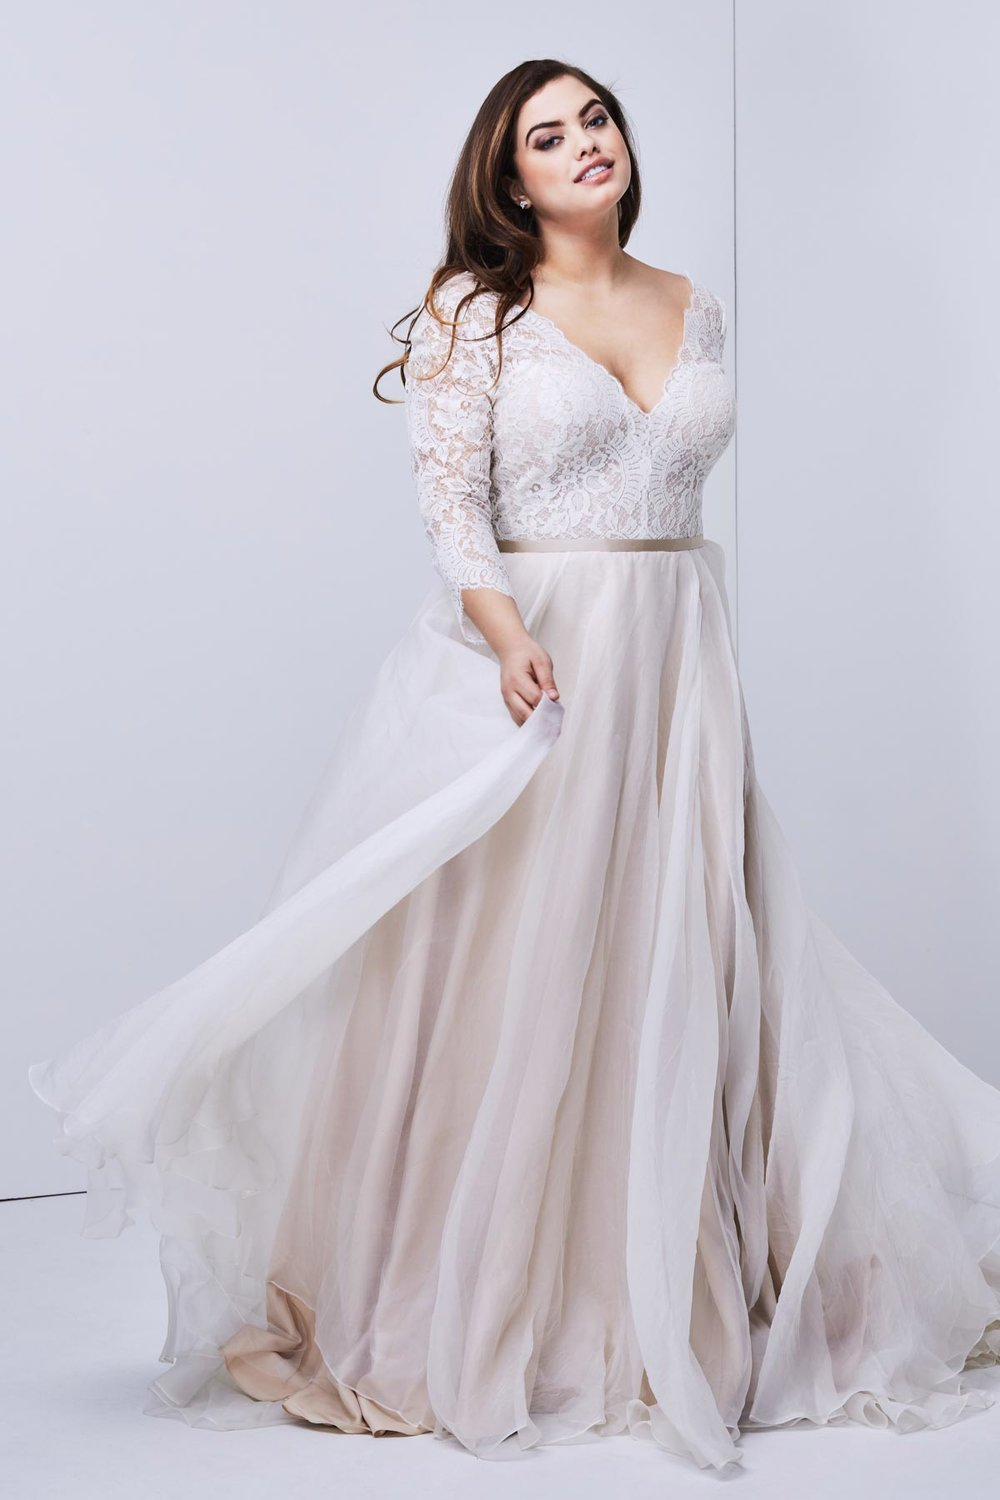 Shiloh Wedding Dress by Watters